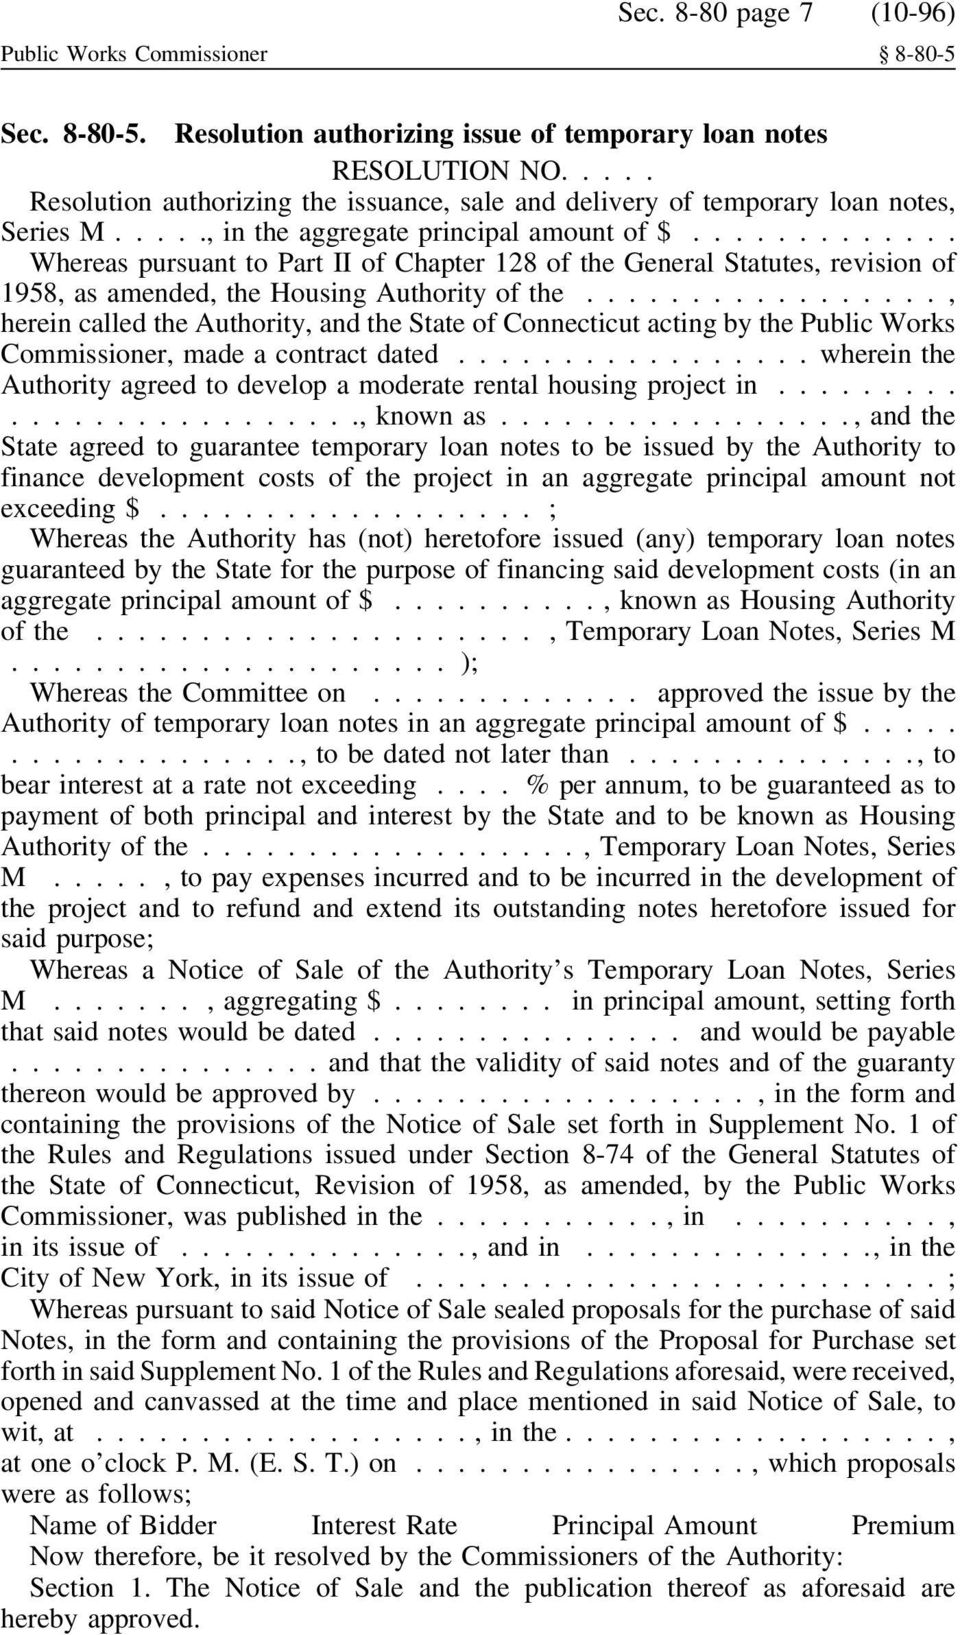 .. Whereas pursuant to Part II of Chapter 128 of the General Statutes, revision of 1958, as amended, the Housing Authority of the.